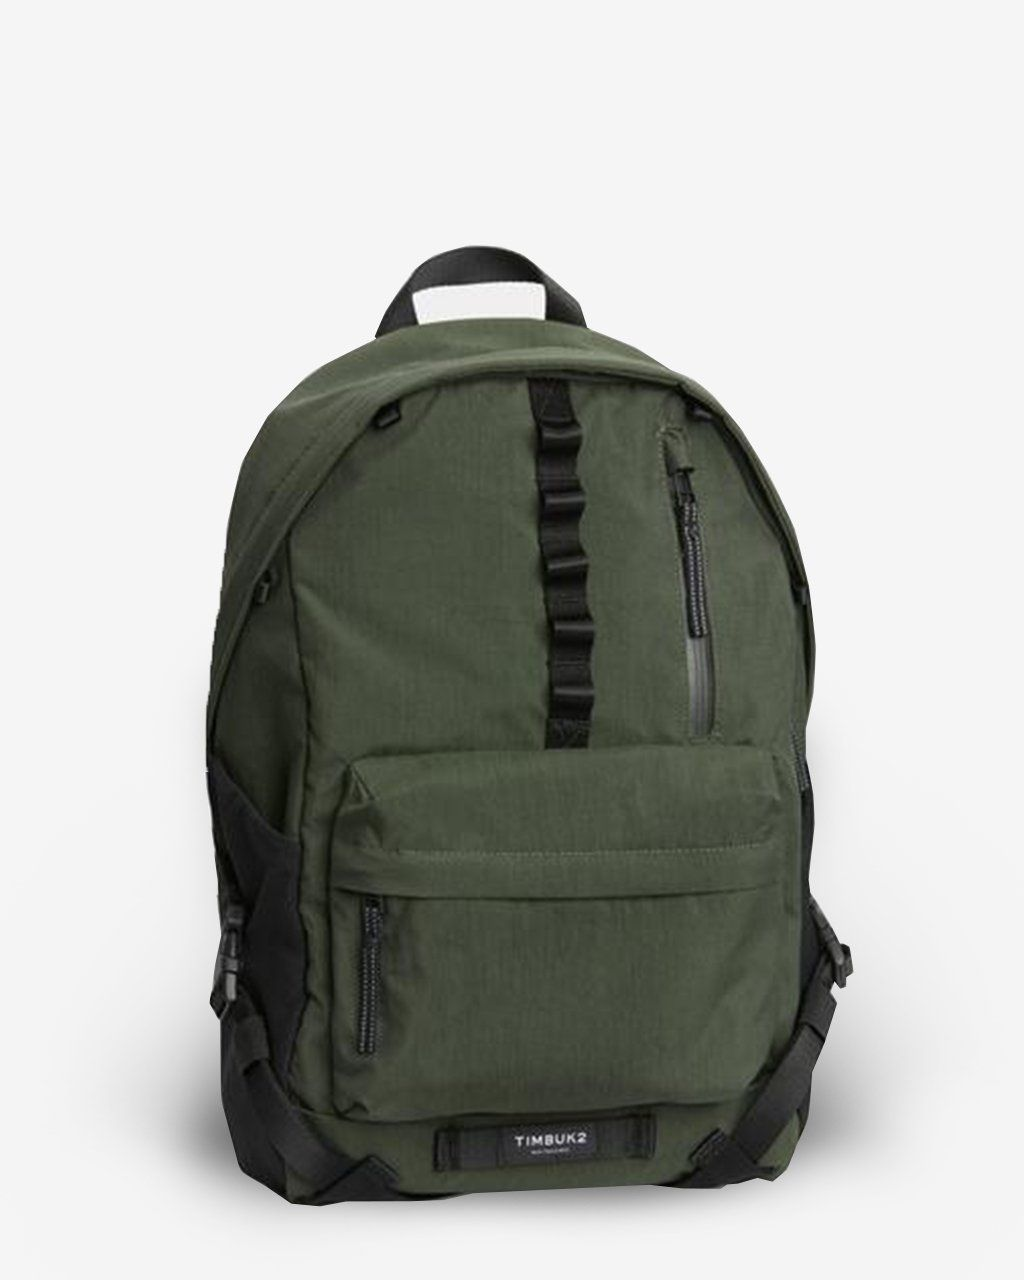 Timbuk2 Collective Festival Backpack In 2020 Festival Backpack